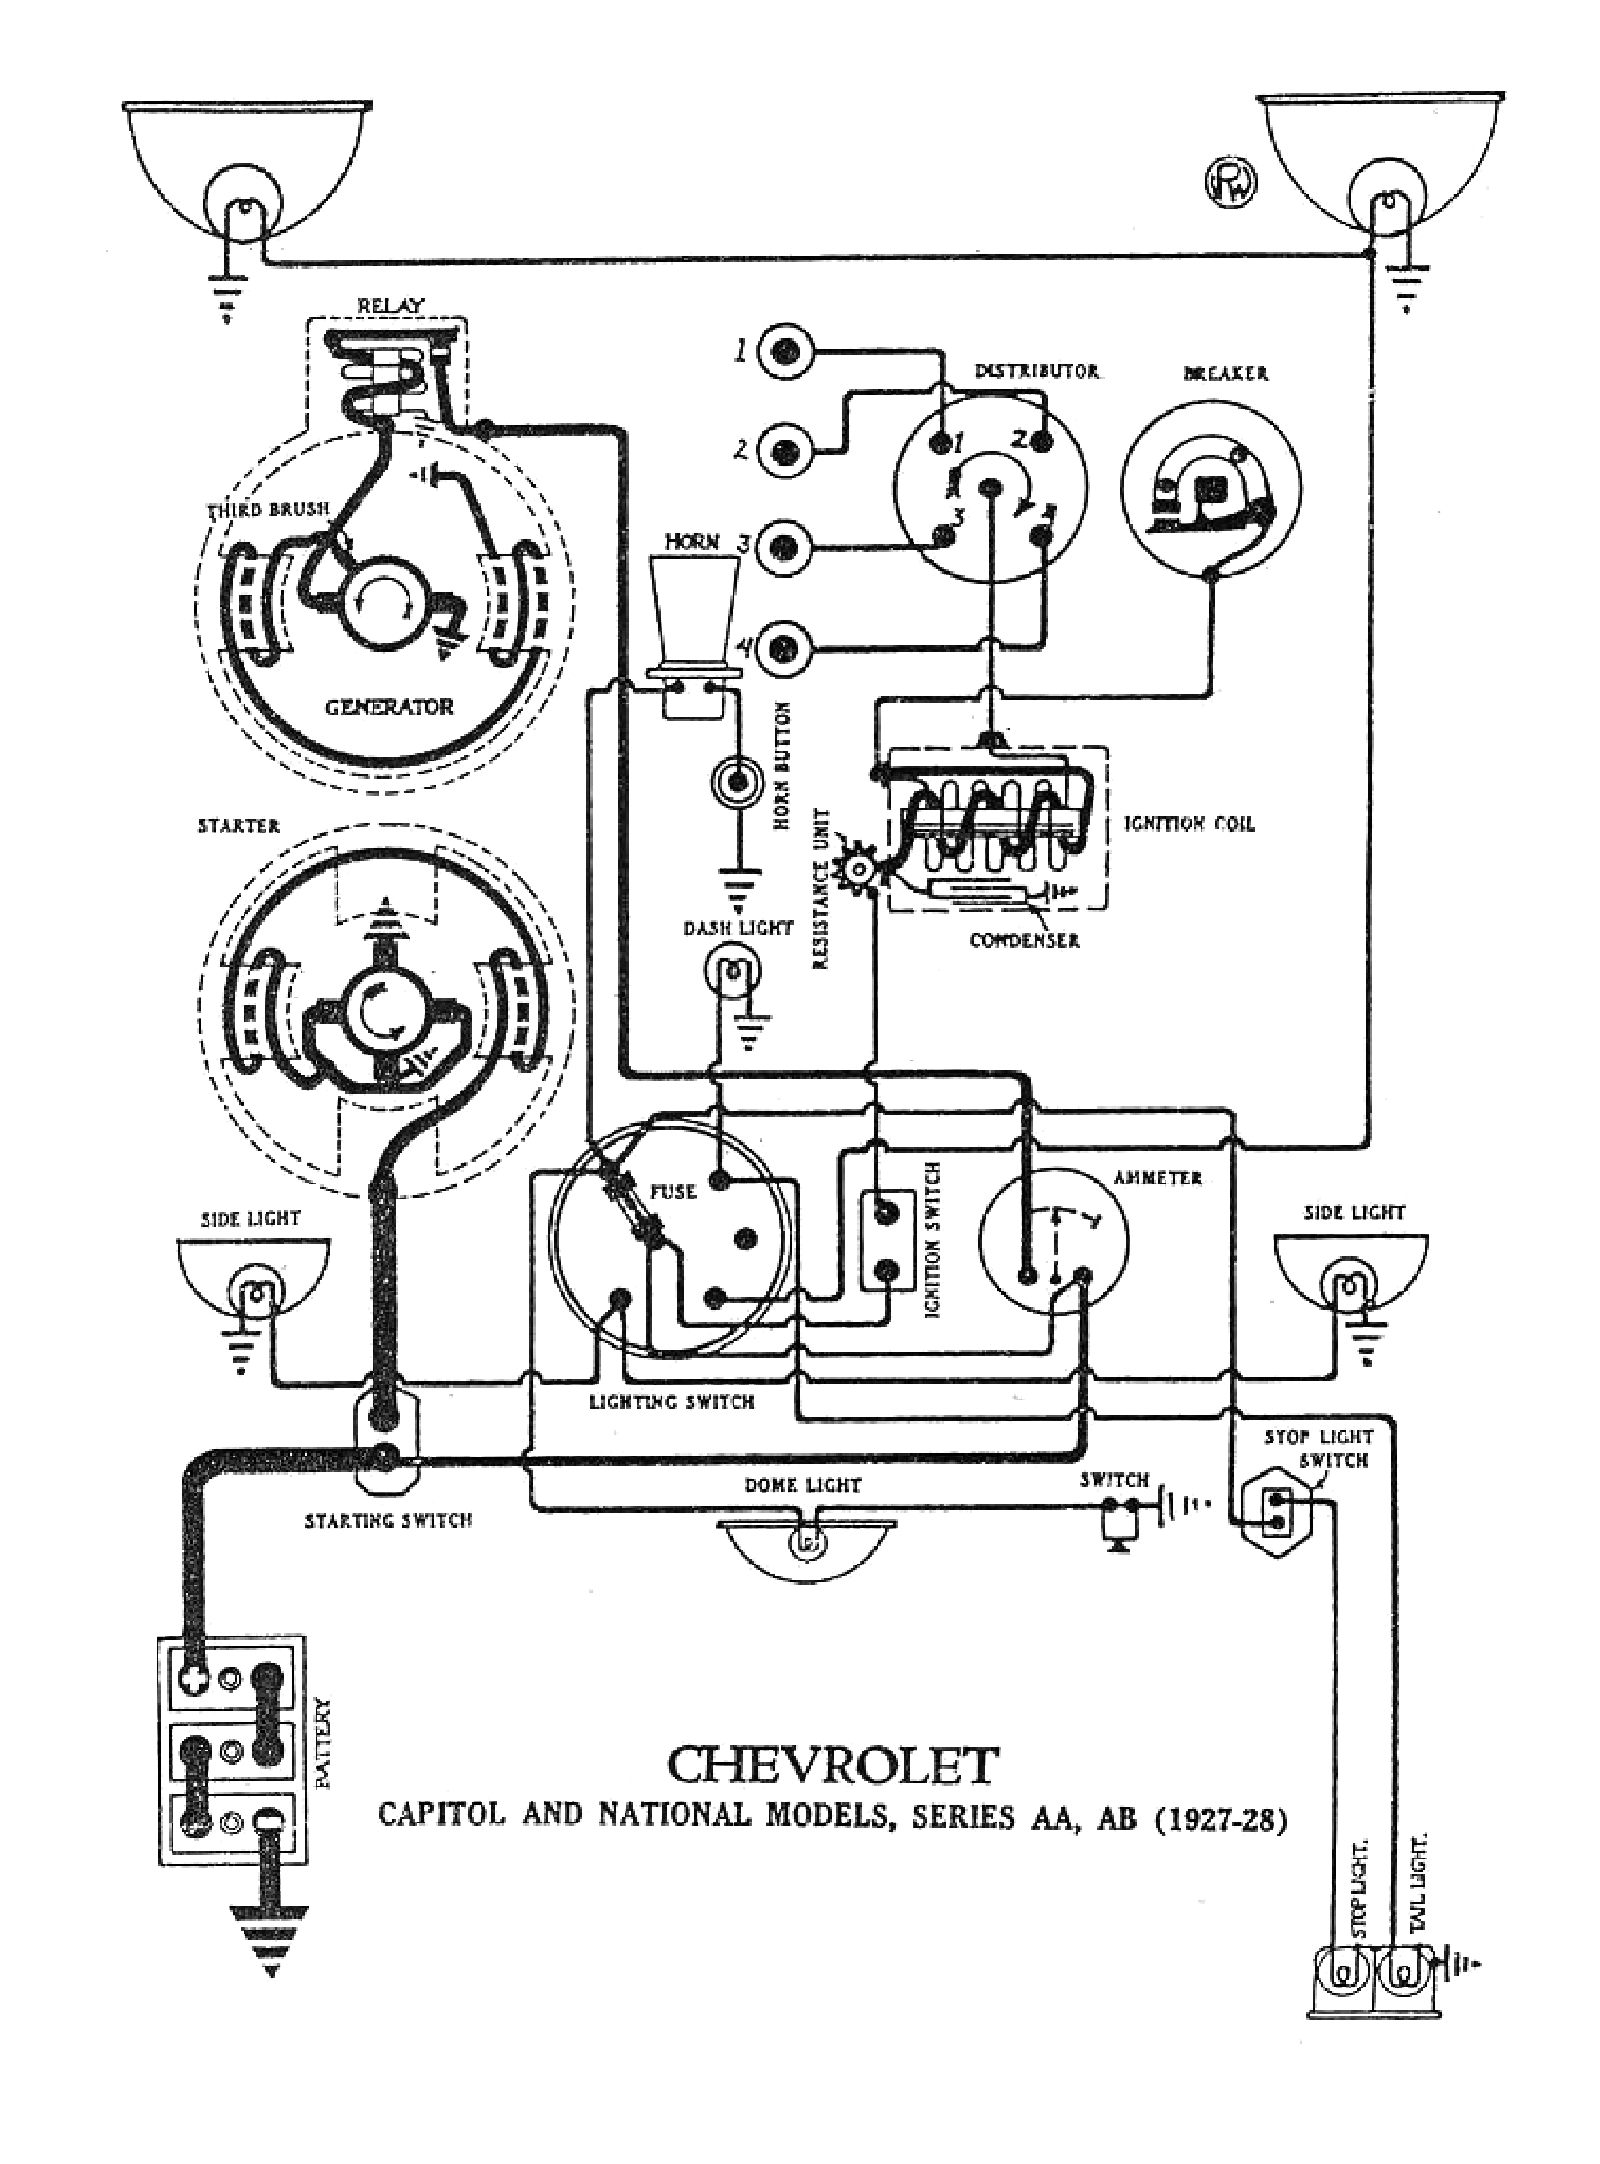 2728wiring chevy wiring diagrams chevy wiring harness diagram at honlapkeszites.co